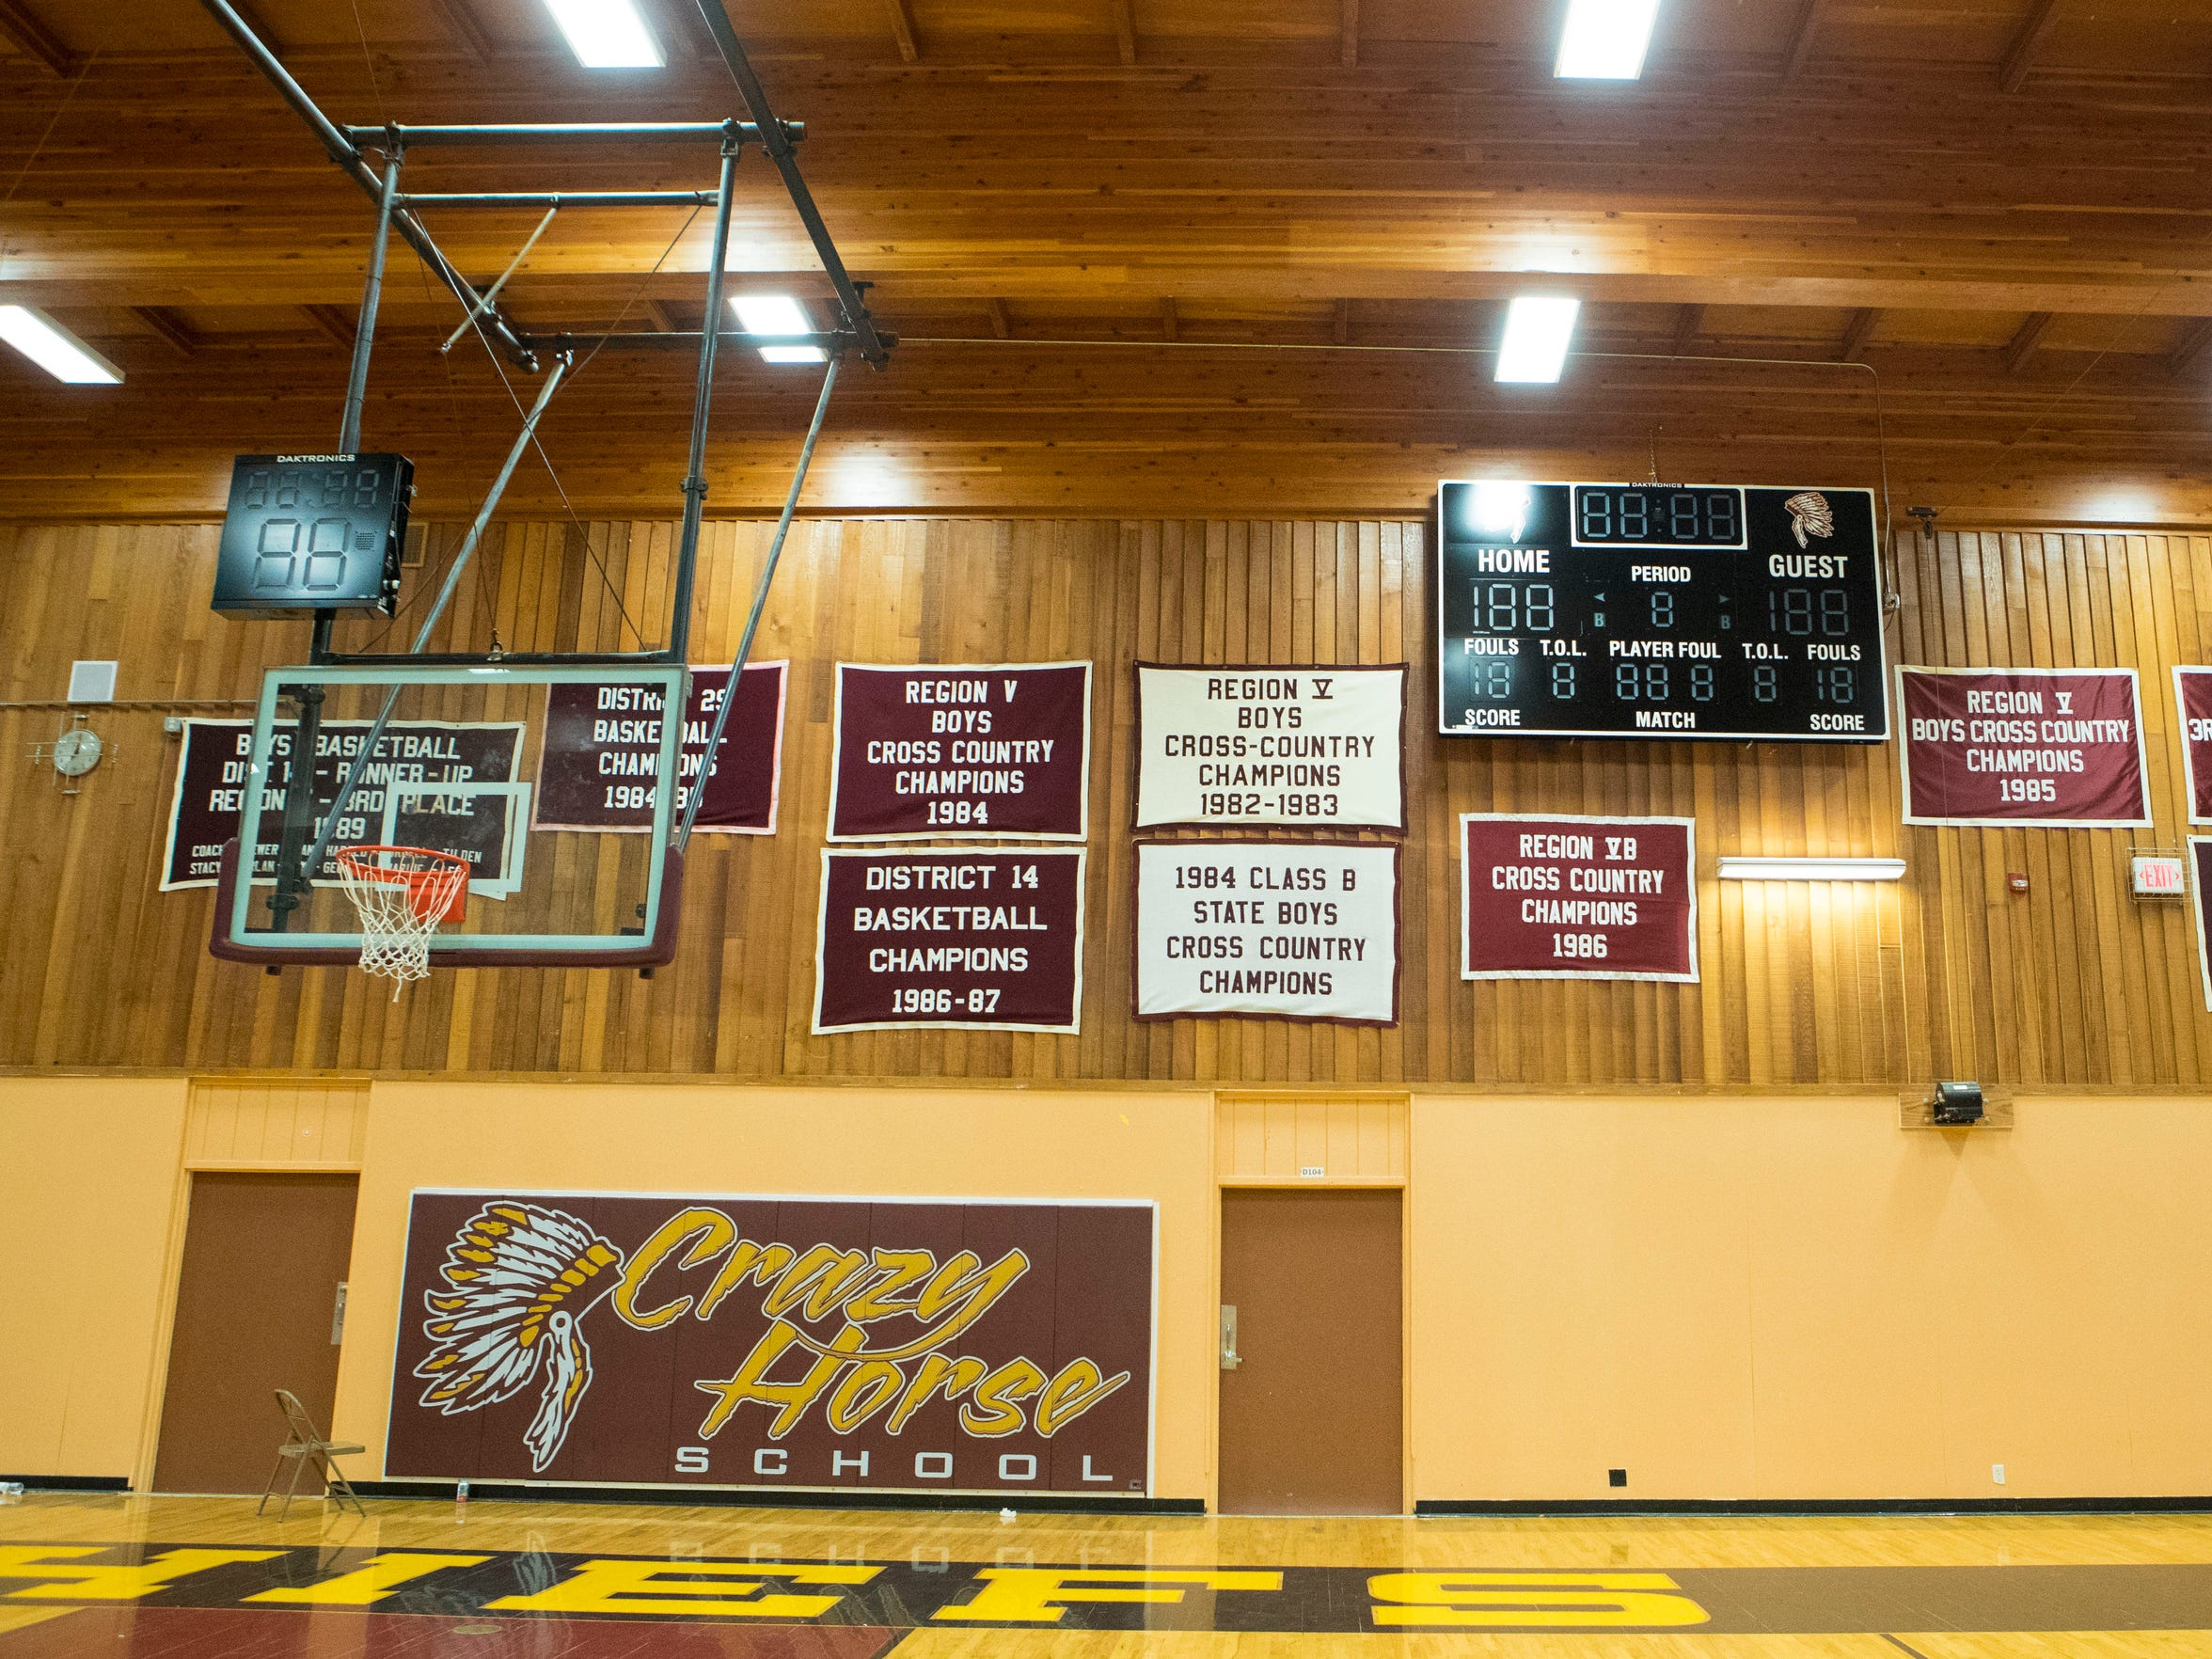 Thanks to a grant from a tribe in Minnesota, Crazy Horse was able to purchase a new scoreboard for its gymnasium prior to last season.